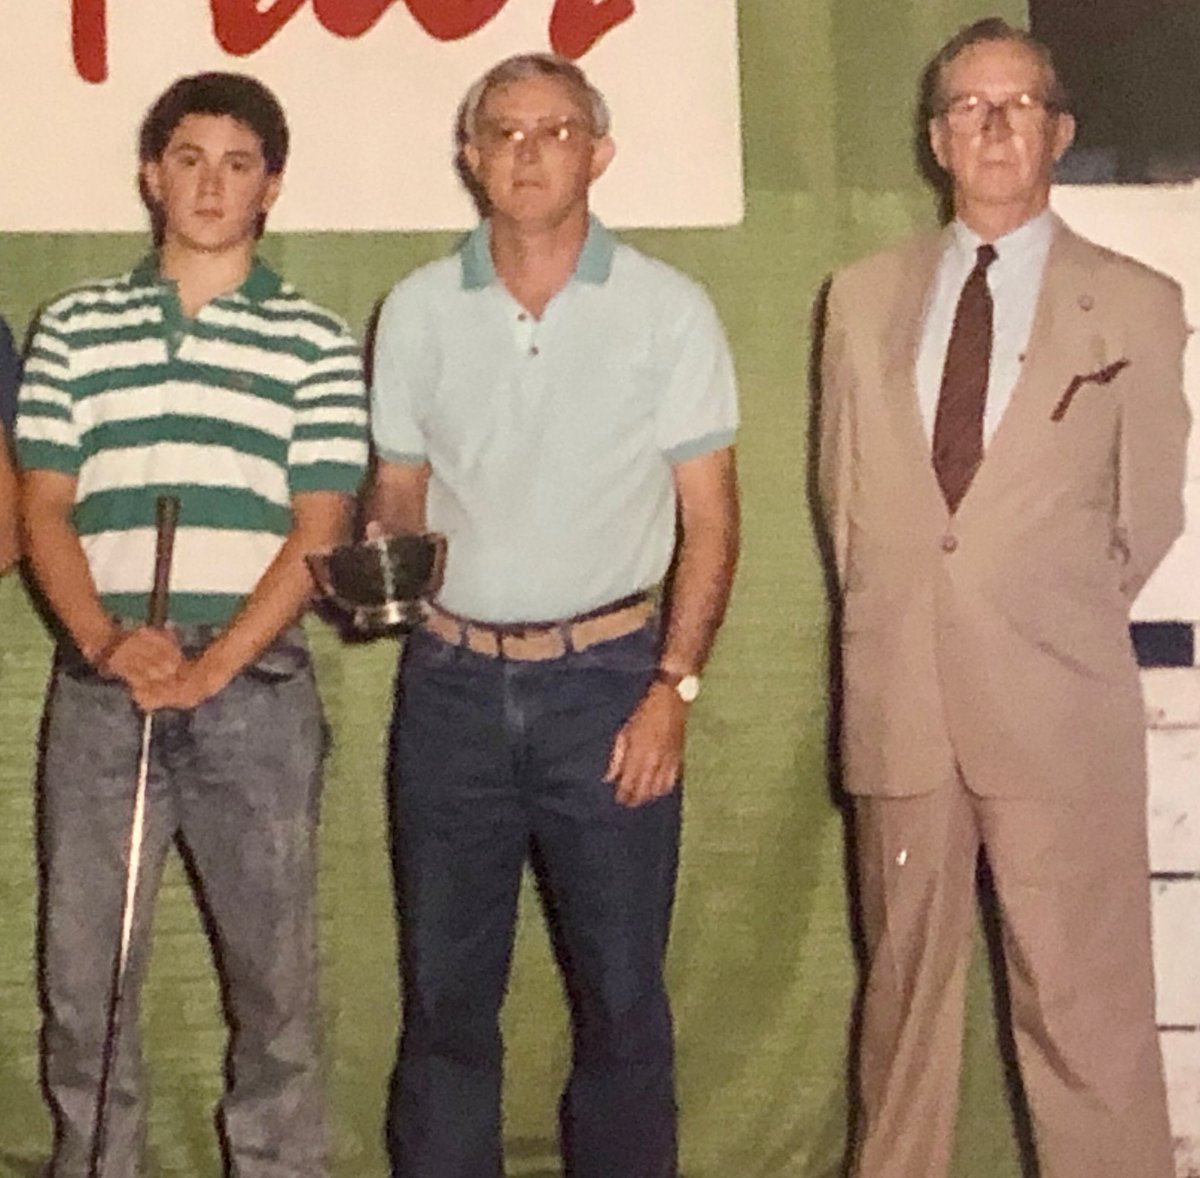 Thinking about my Dad and my Grandfather on this #FathersDay. I miss them both. This picture was taken at the Kentucky State Fair in 1989 after a very successful day of showing Charolais cattle. Happy #fathersday2020 to all the dads & cherish every moment you have together.